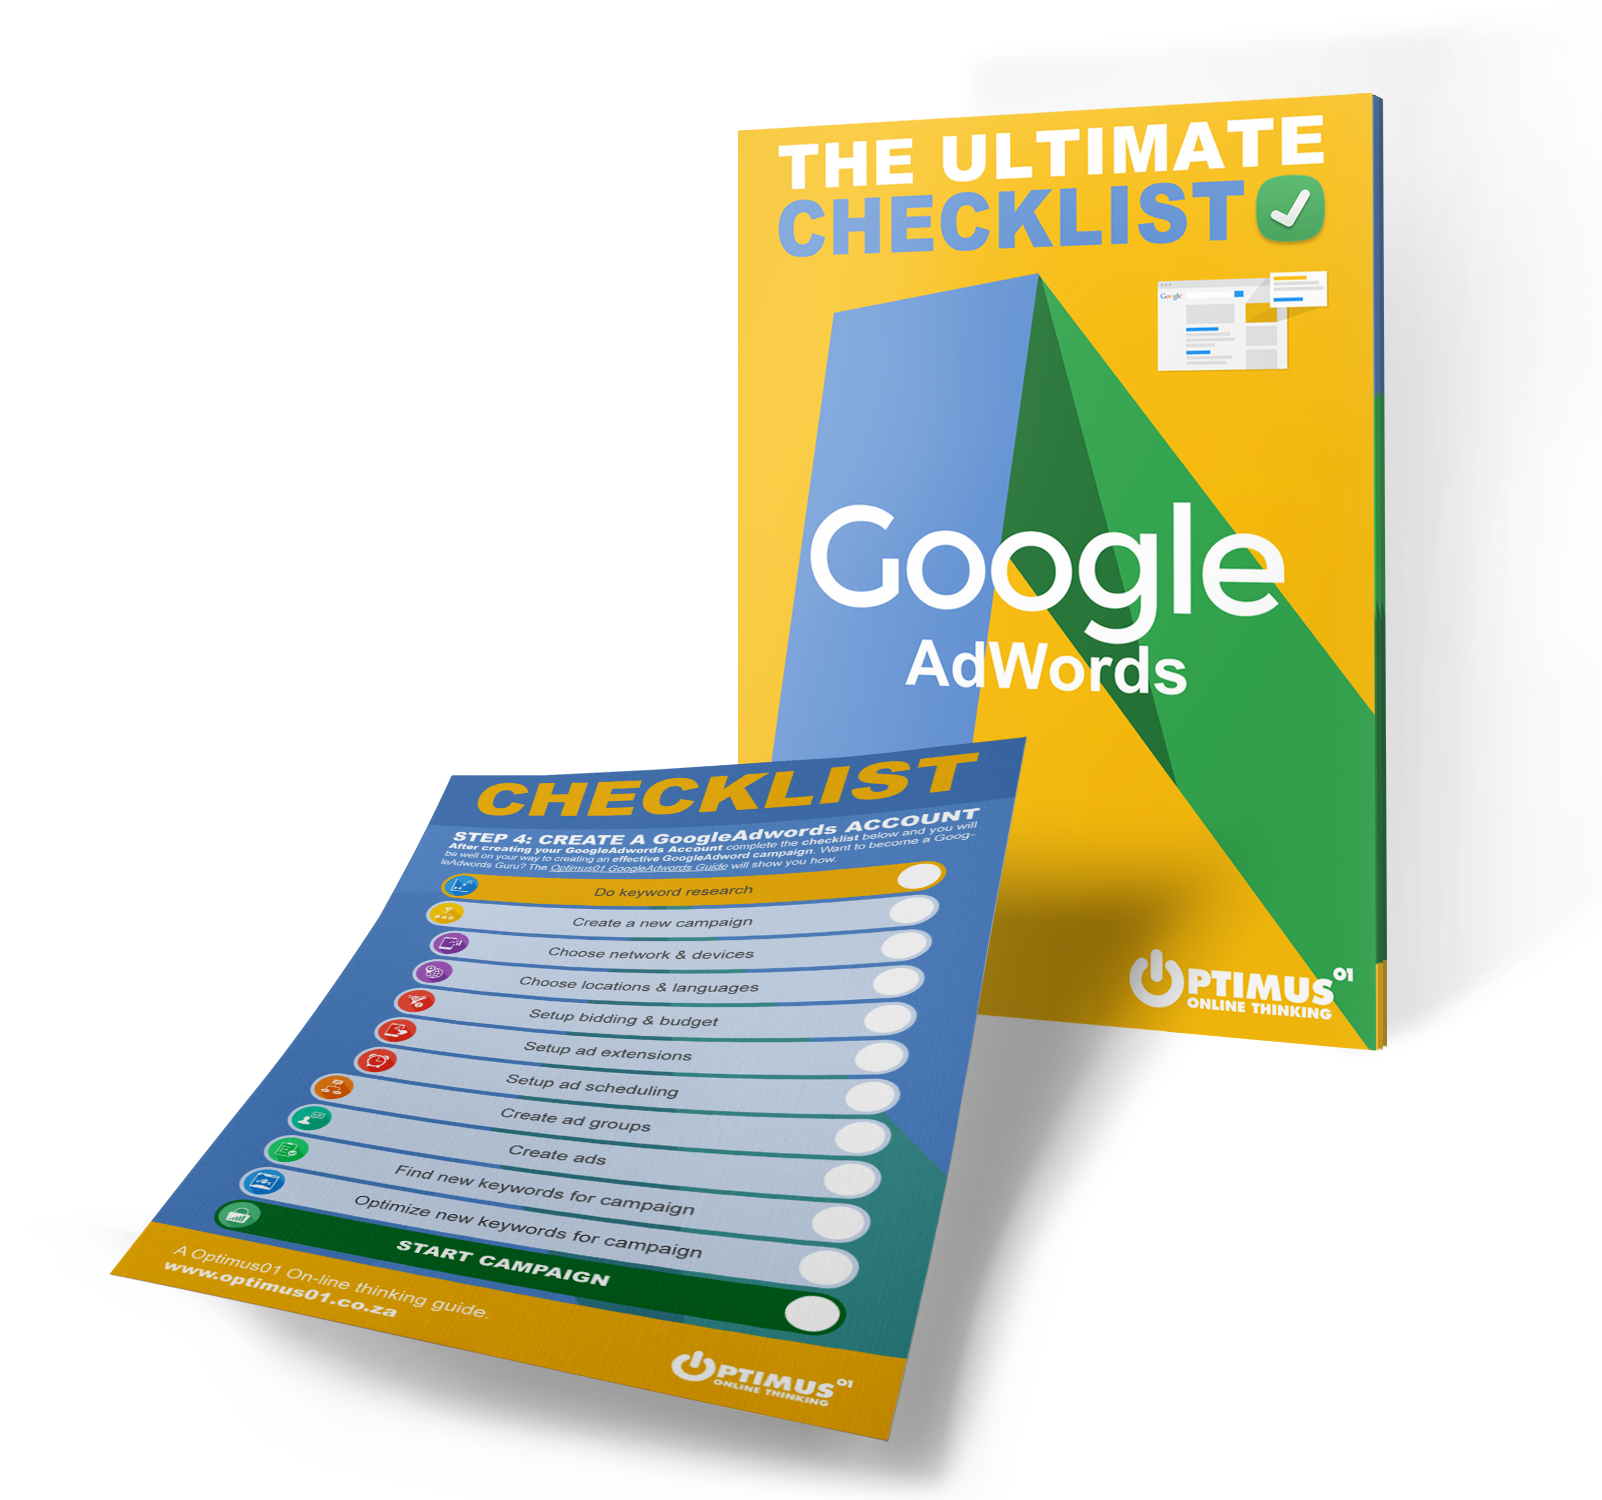 Ultimate Google AdWords Checklist